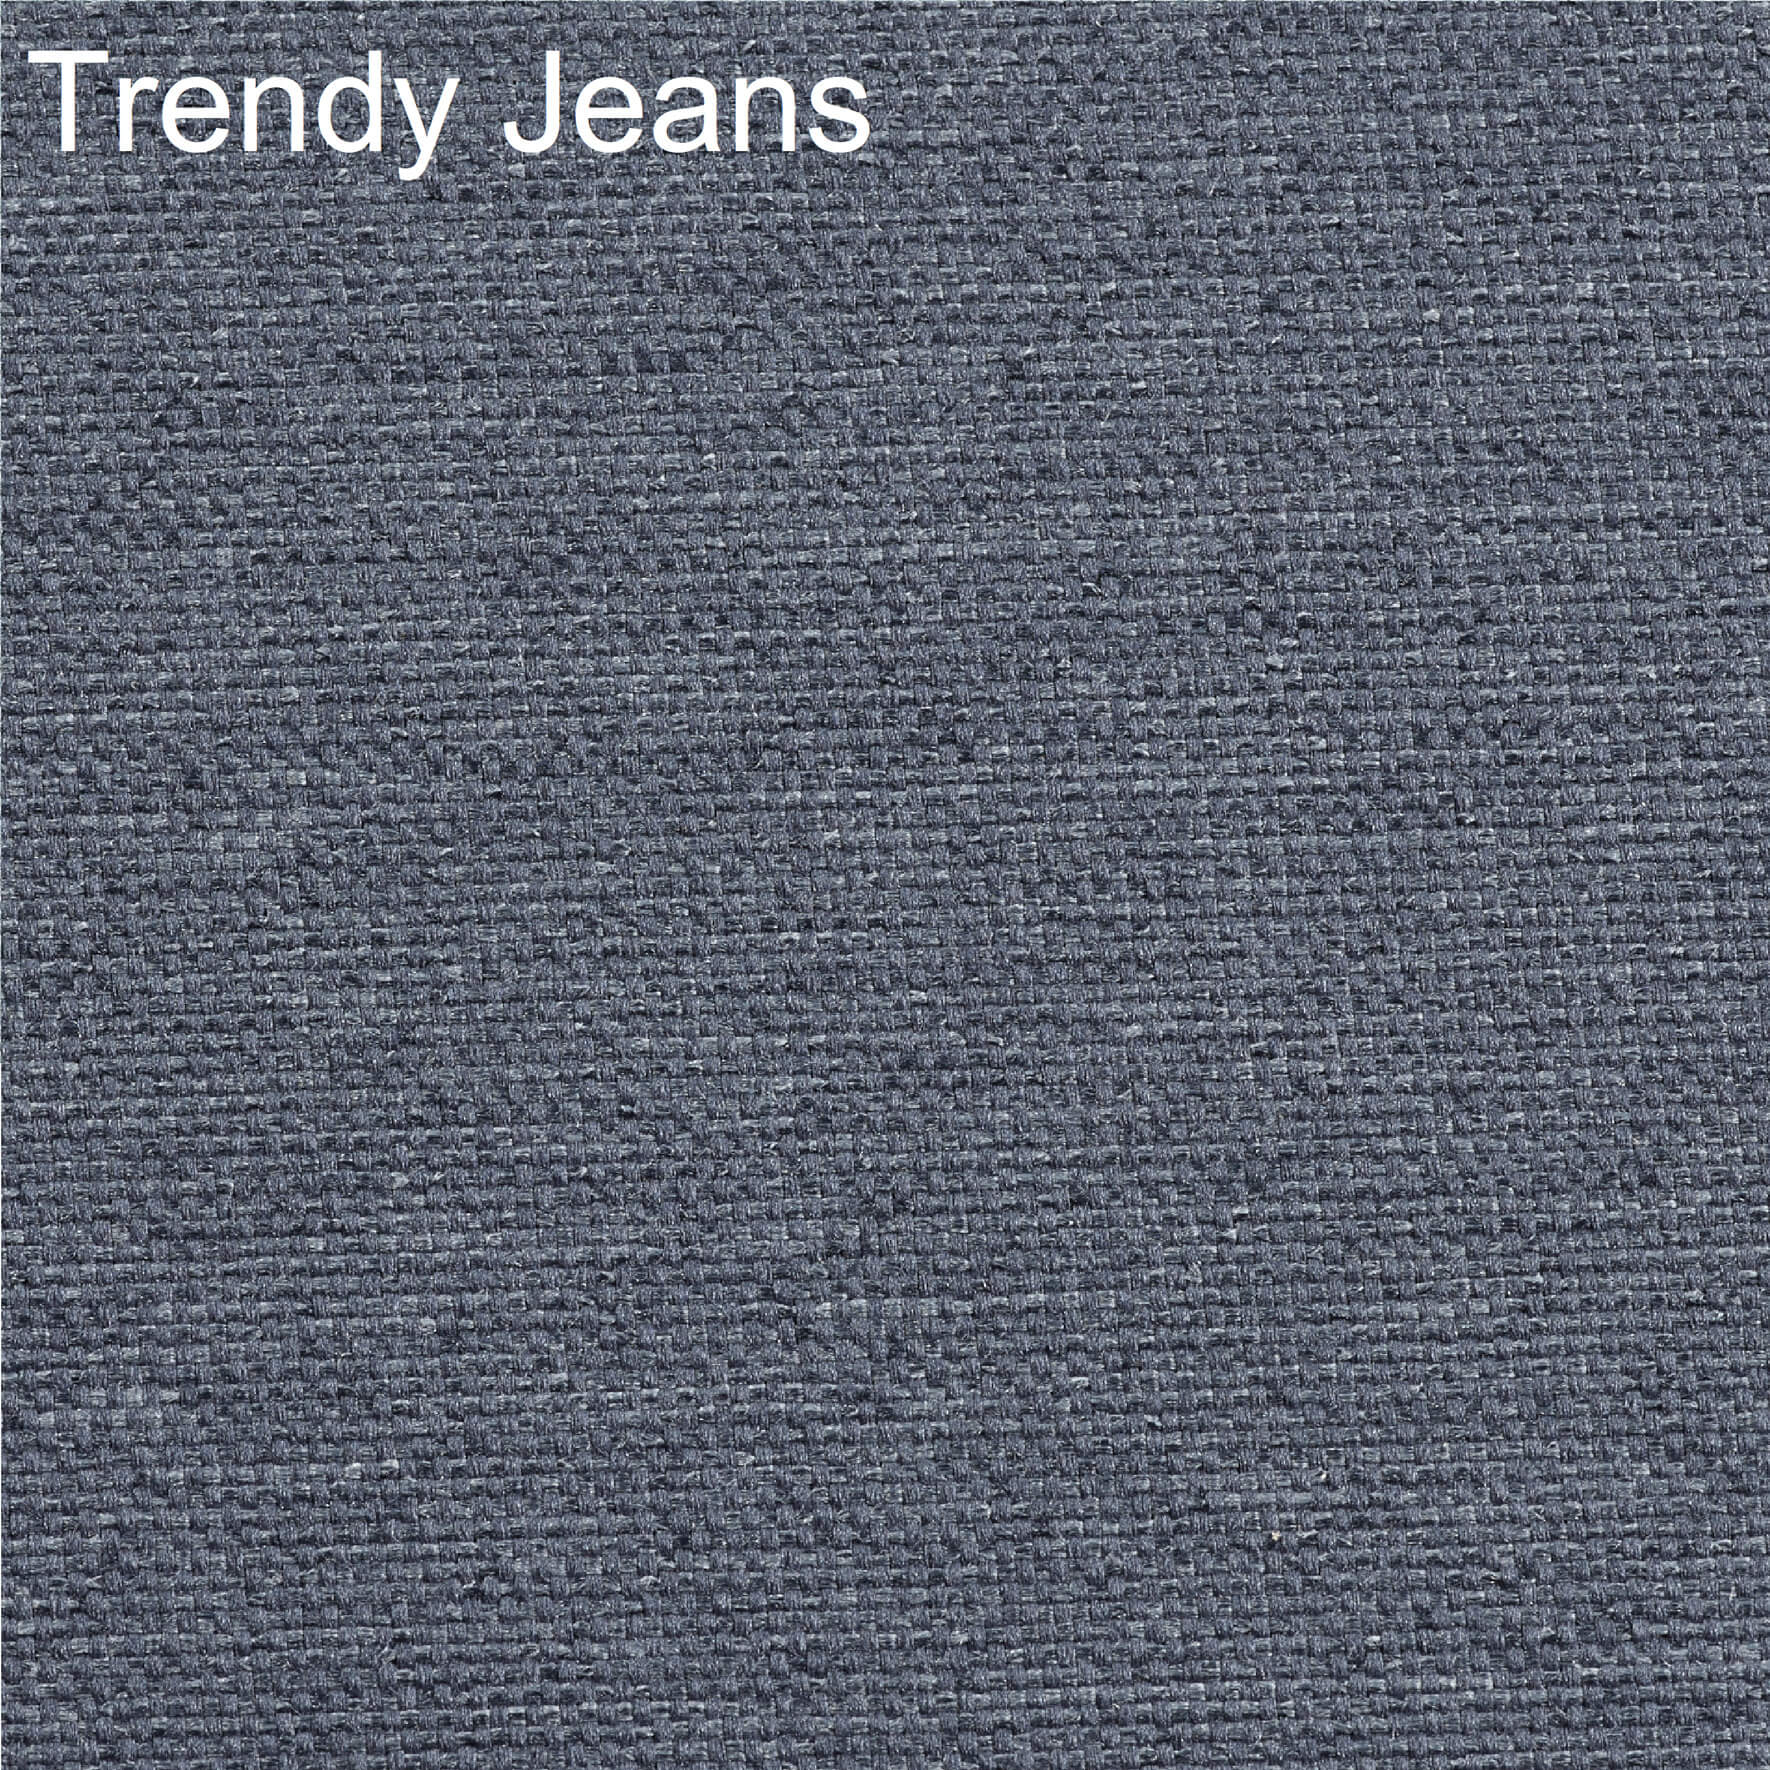 Trendy-Jeans-Myers-Fabric-Swatch-Natural-Collection